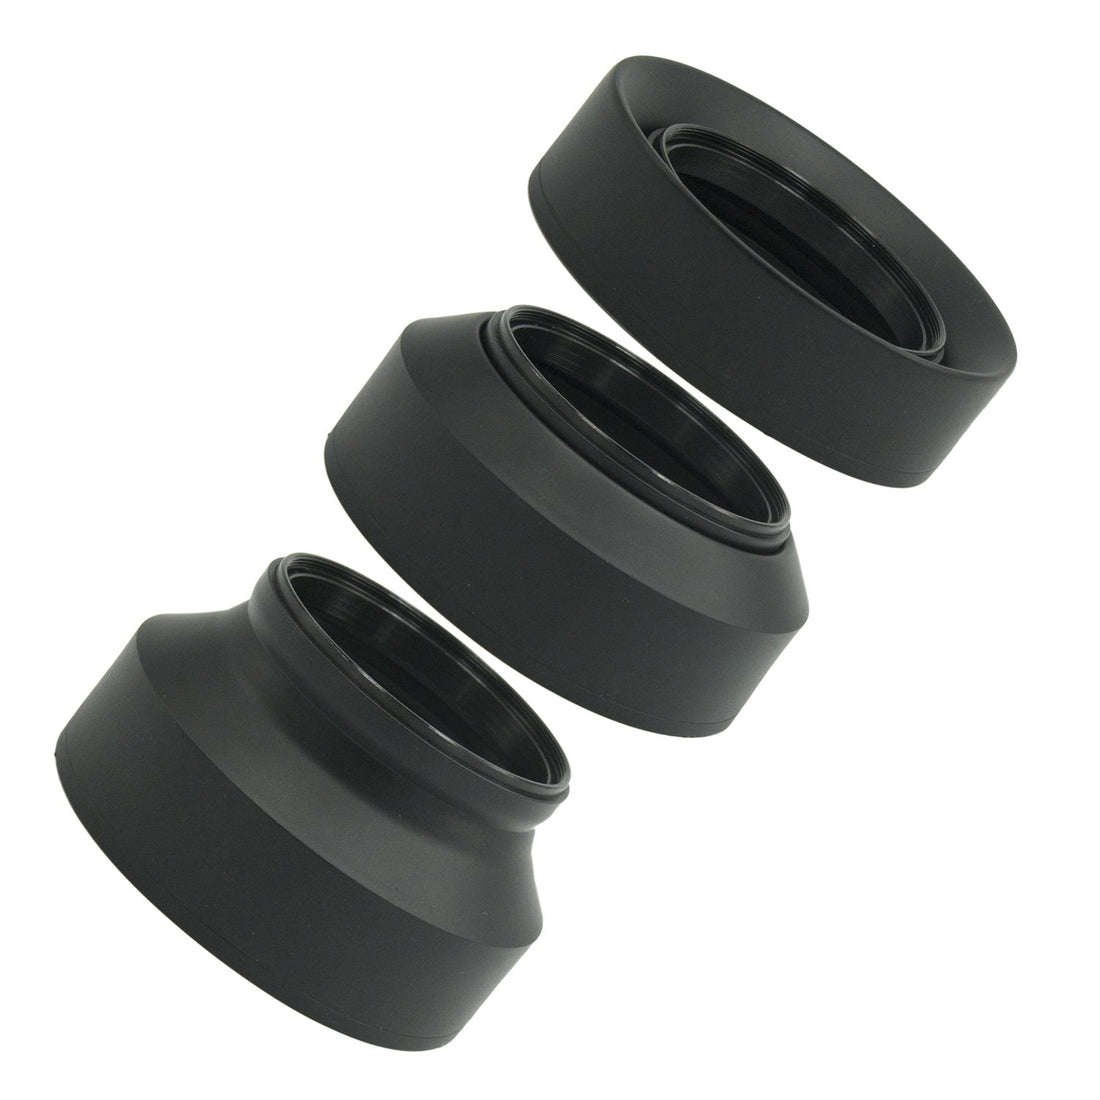 Tyfoto lens filters and camera accessories